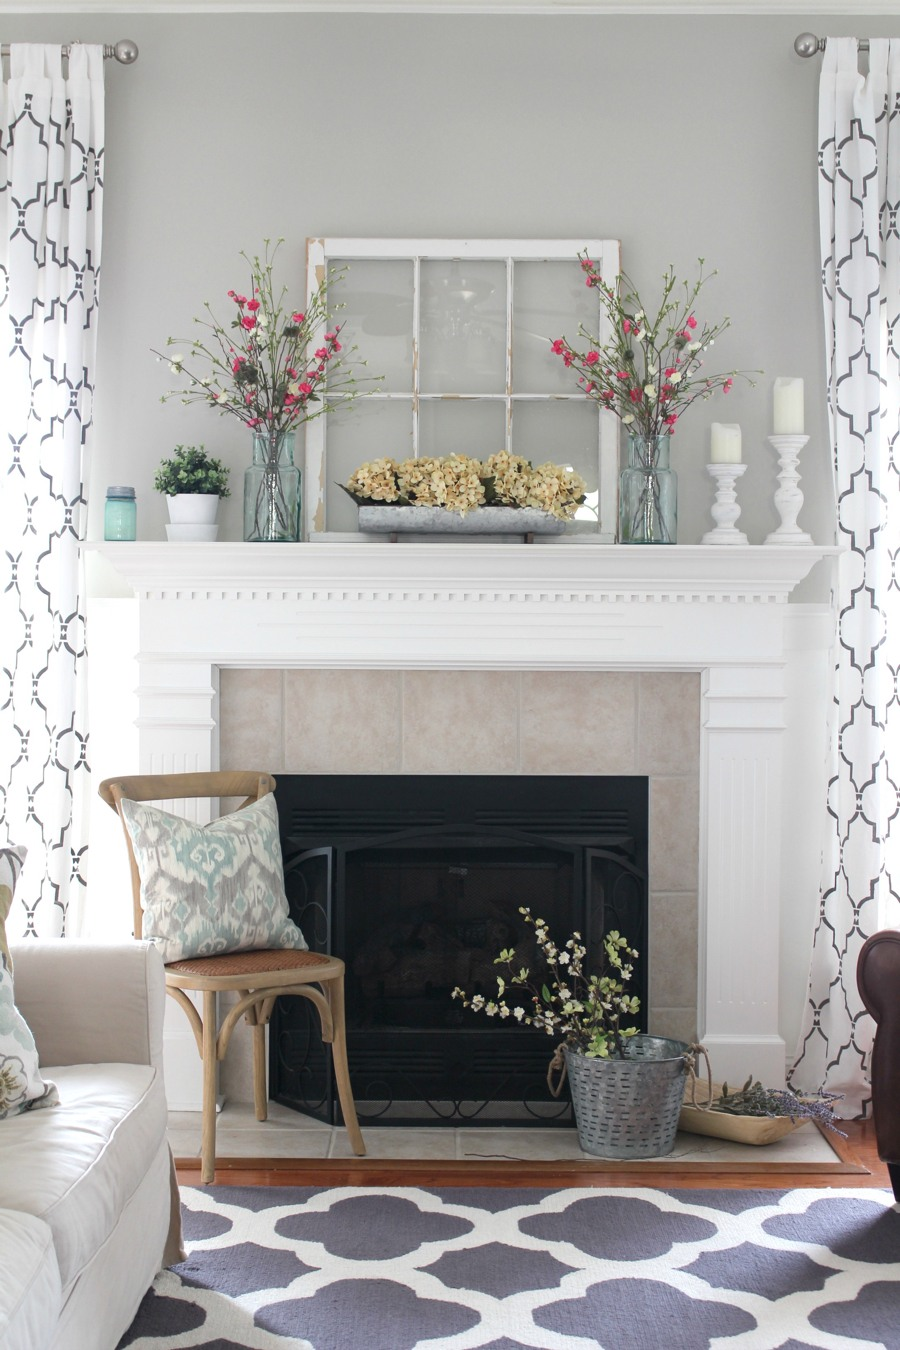 27 Rustic Farmhouse Living Room Decor Ideas for Your Home   Homelovr Rustic Mantel Decor